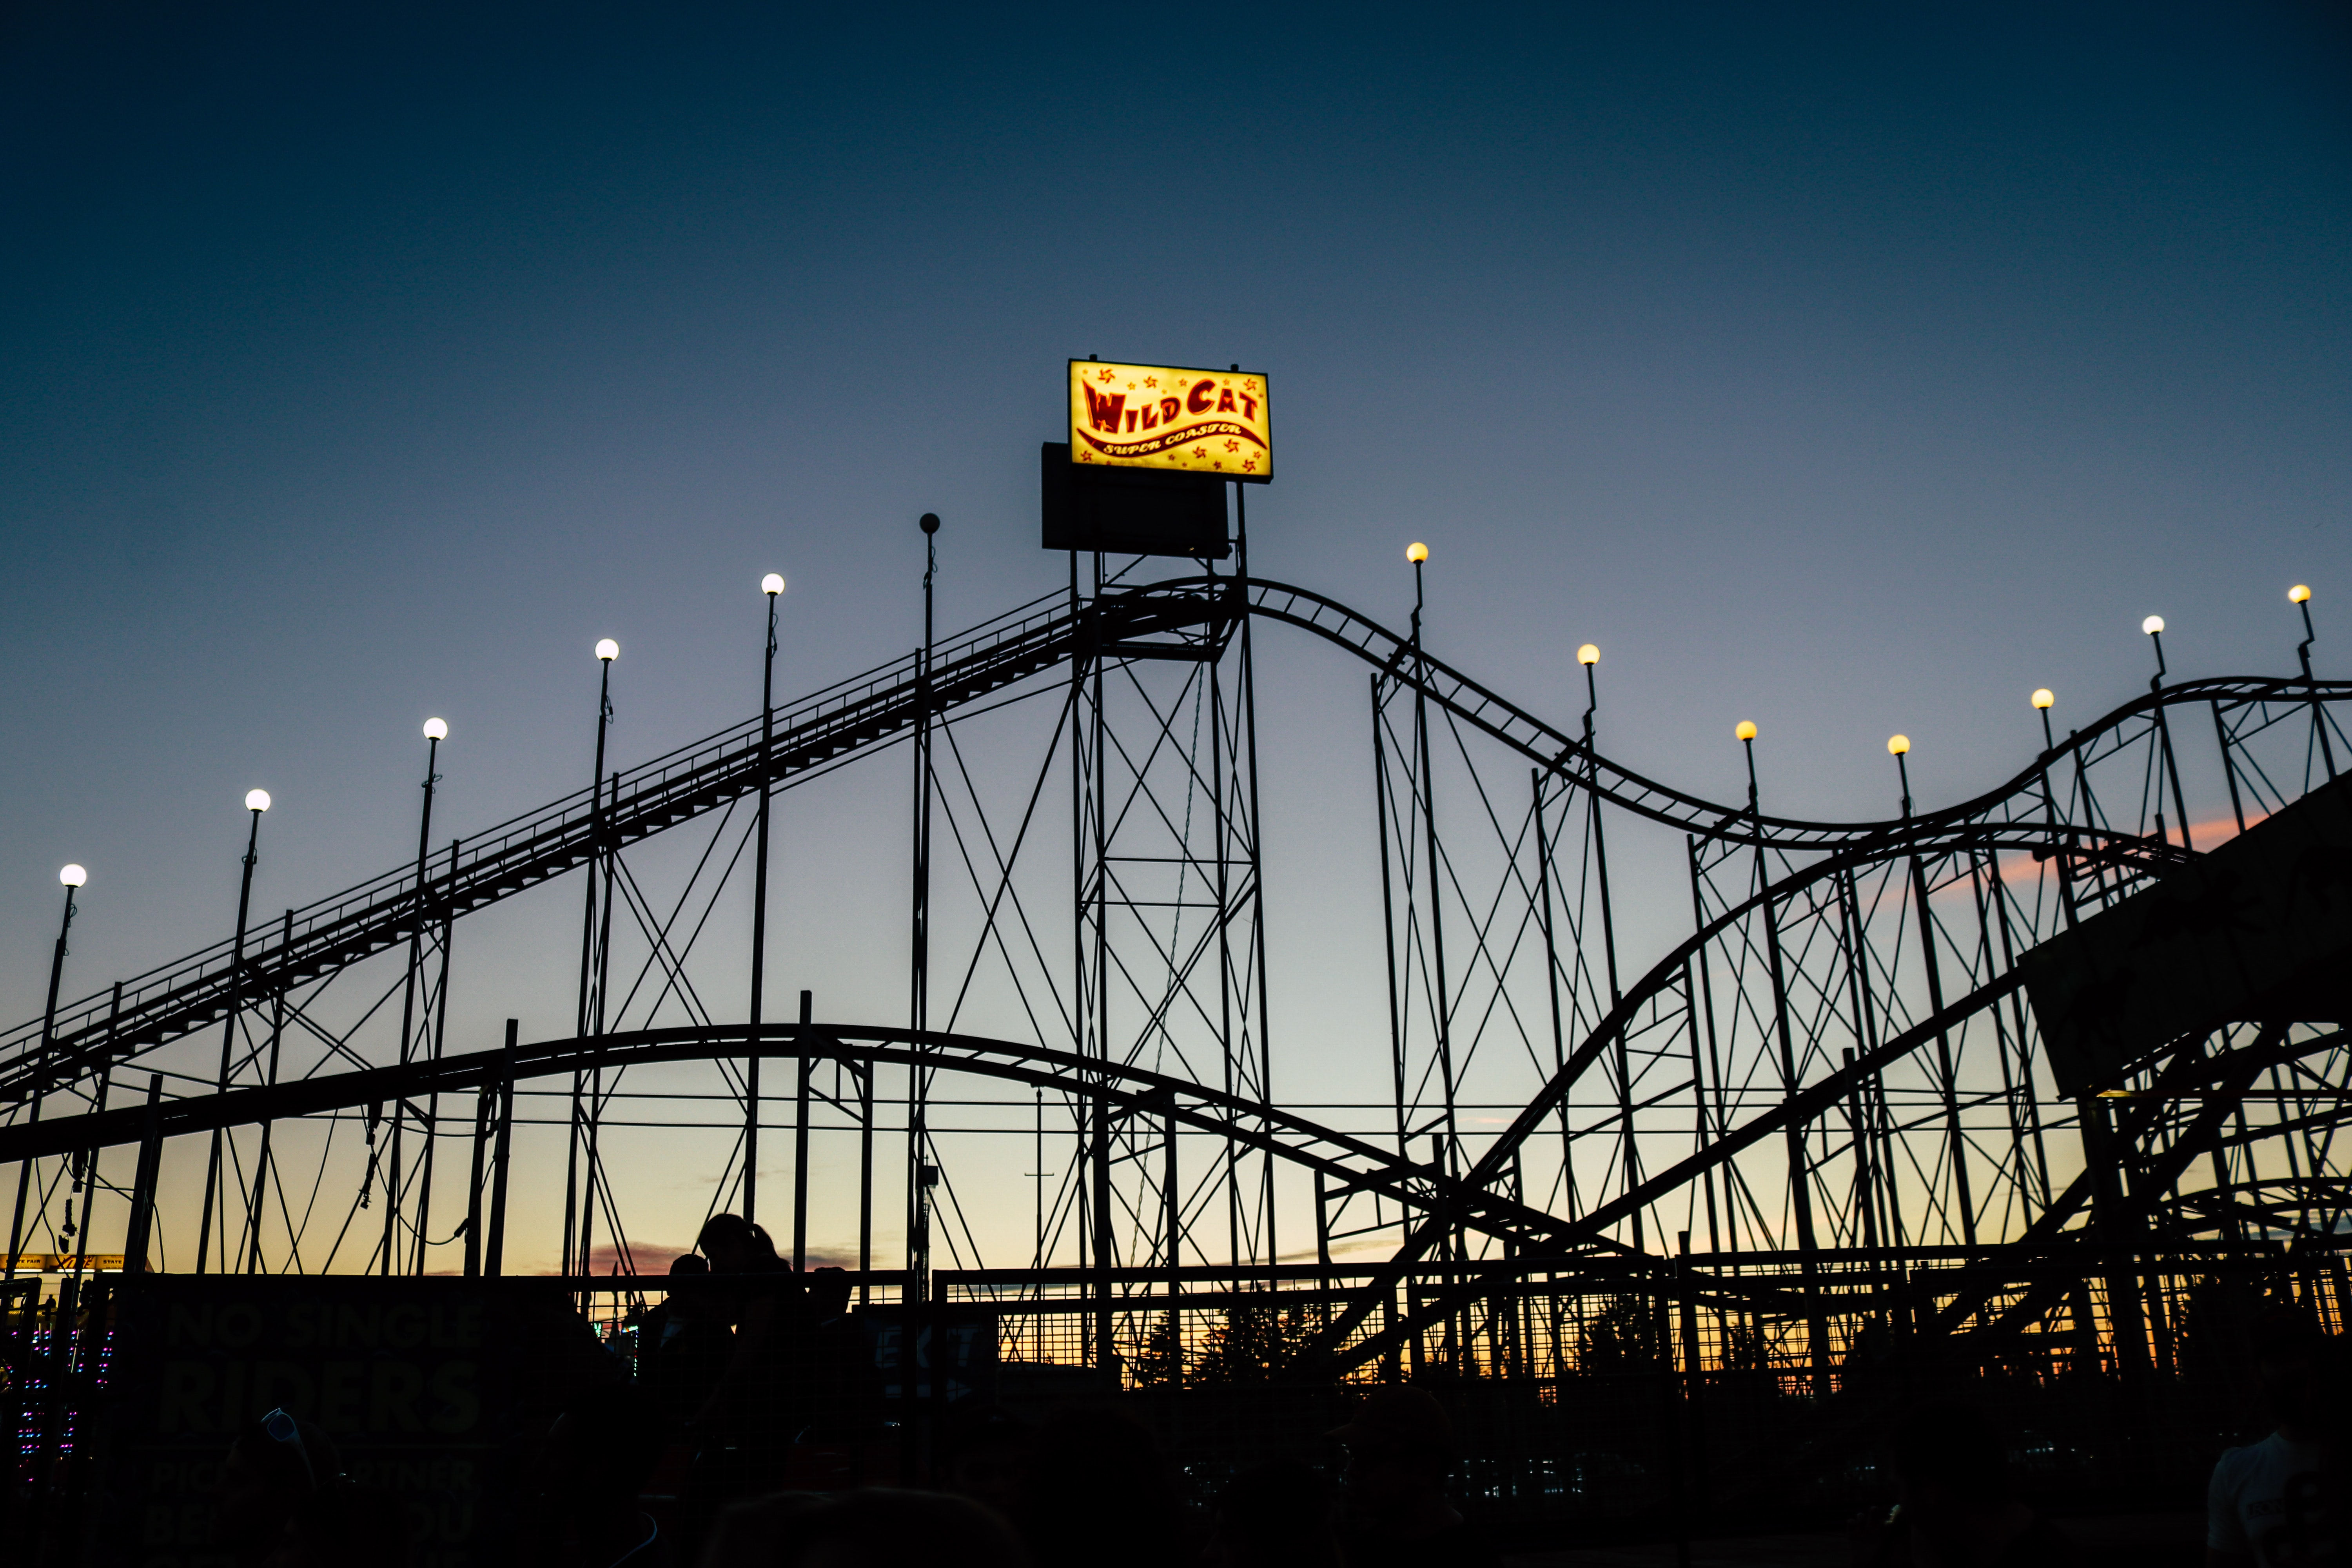 silhouette photo of Wild Cat roller coaster